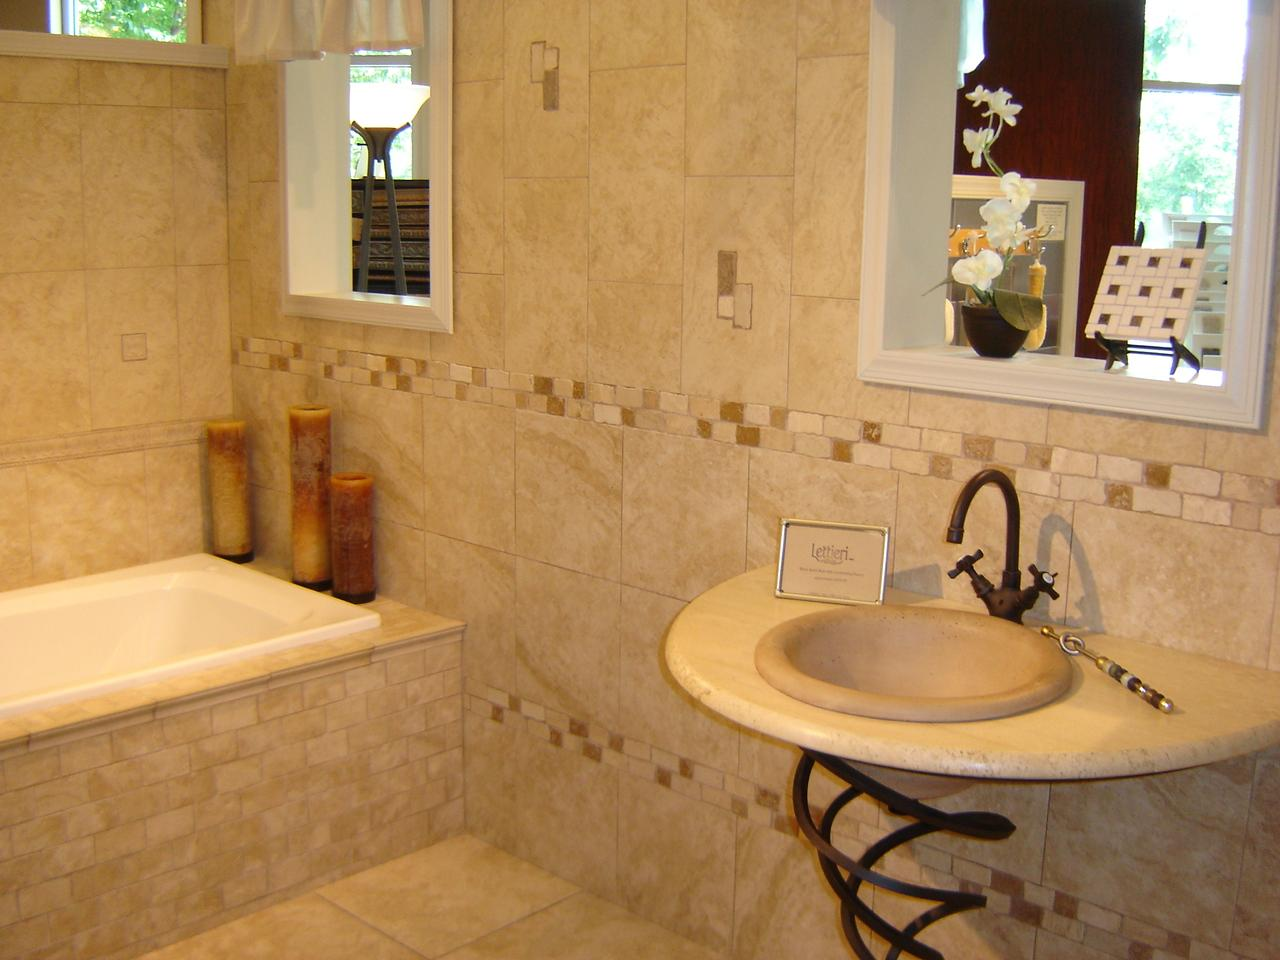 bathroom tile design ideas On bathroom decor and tiles